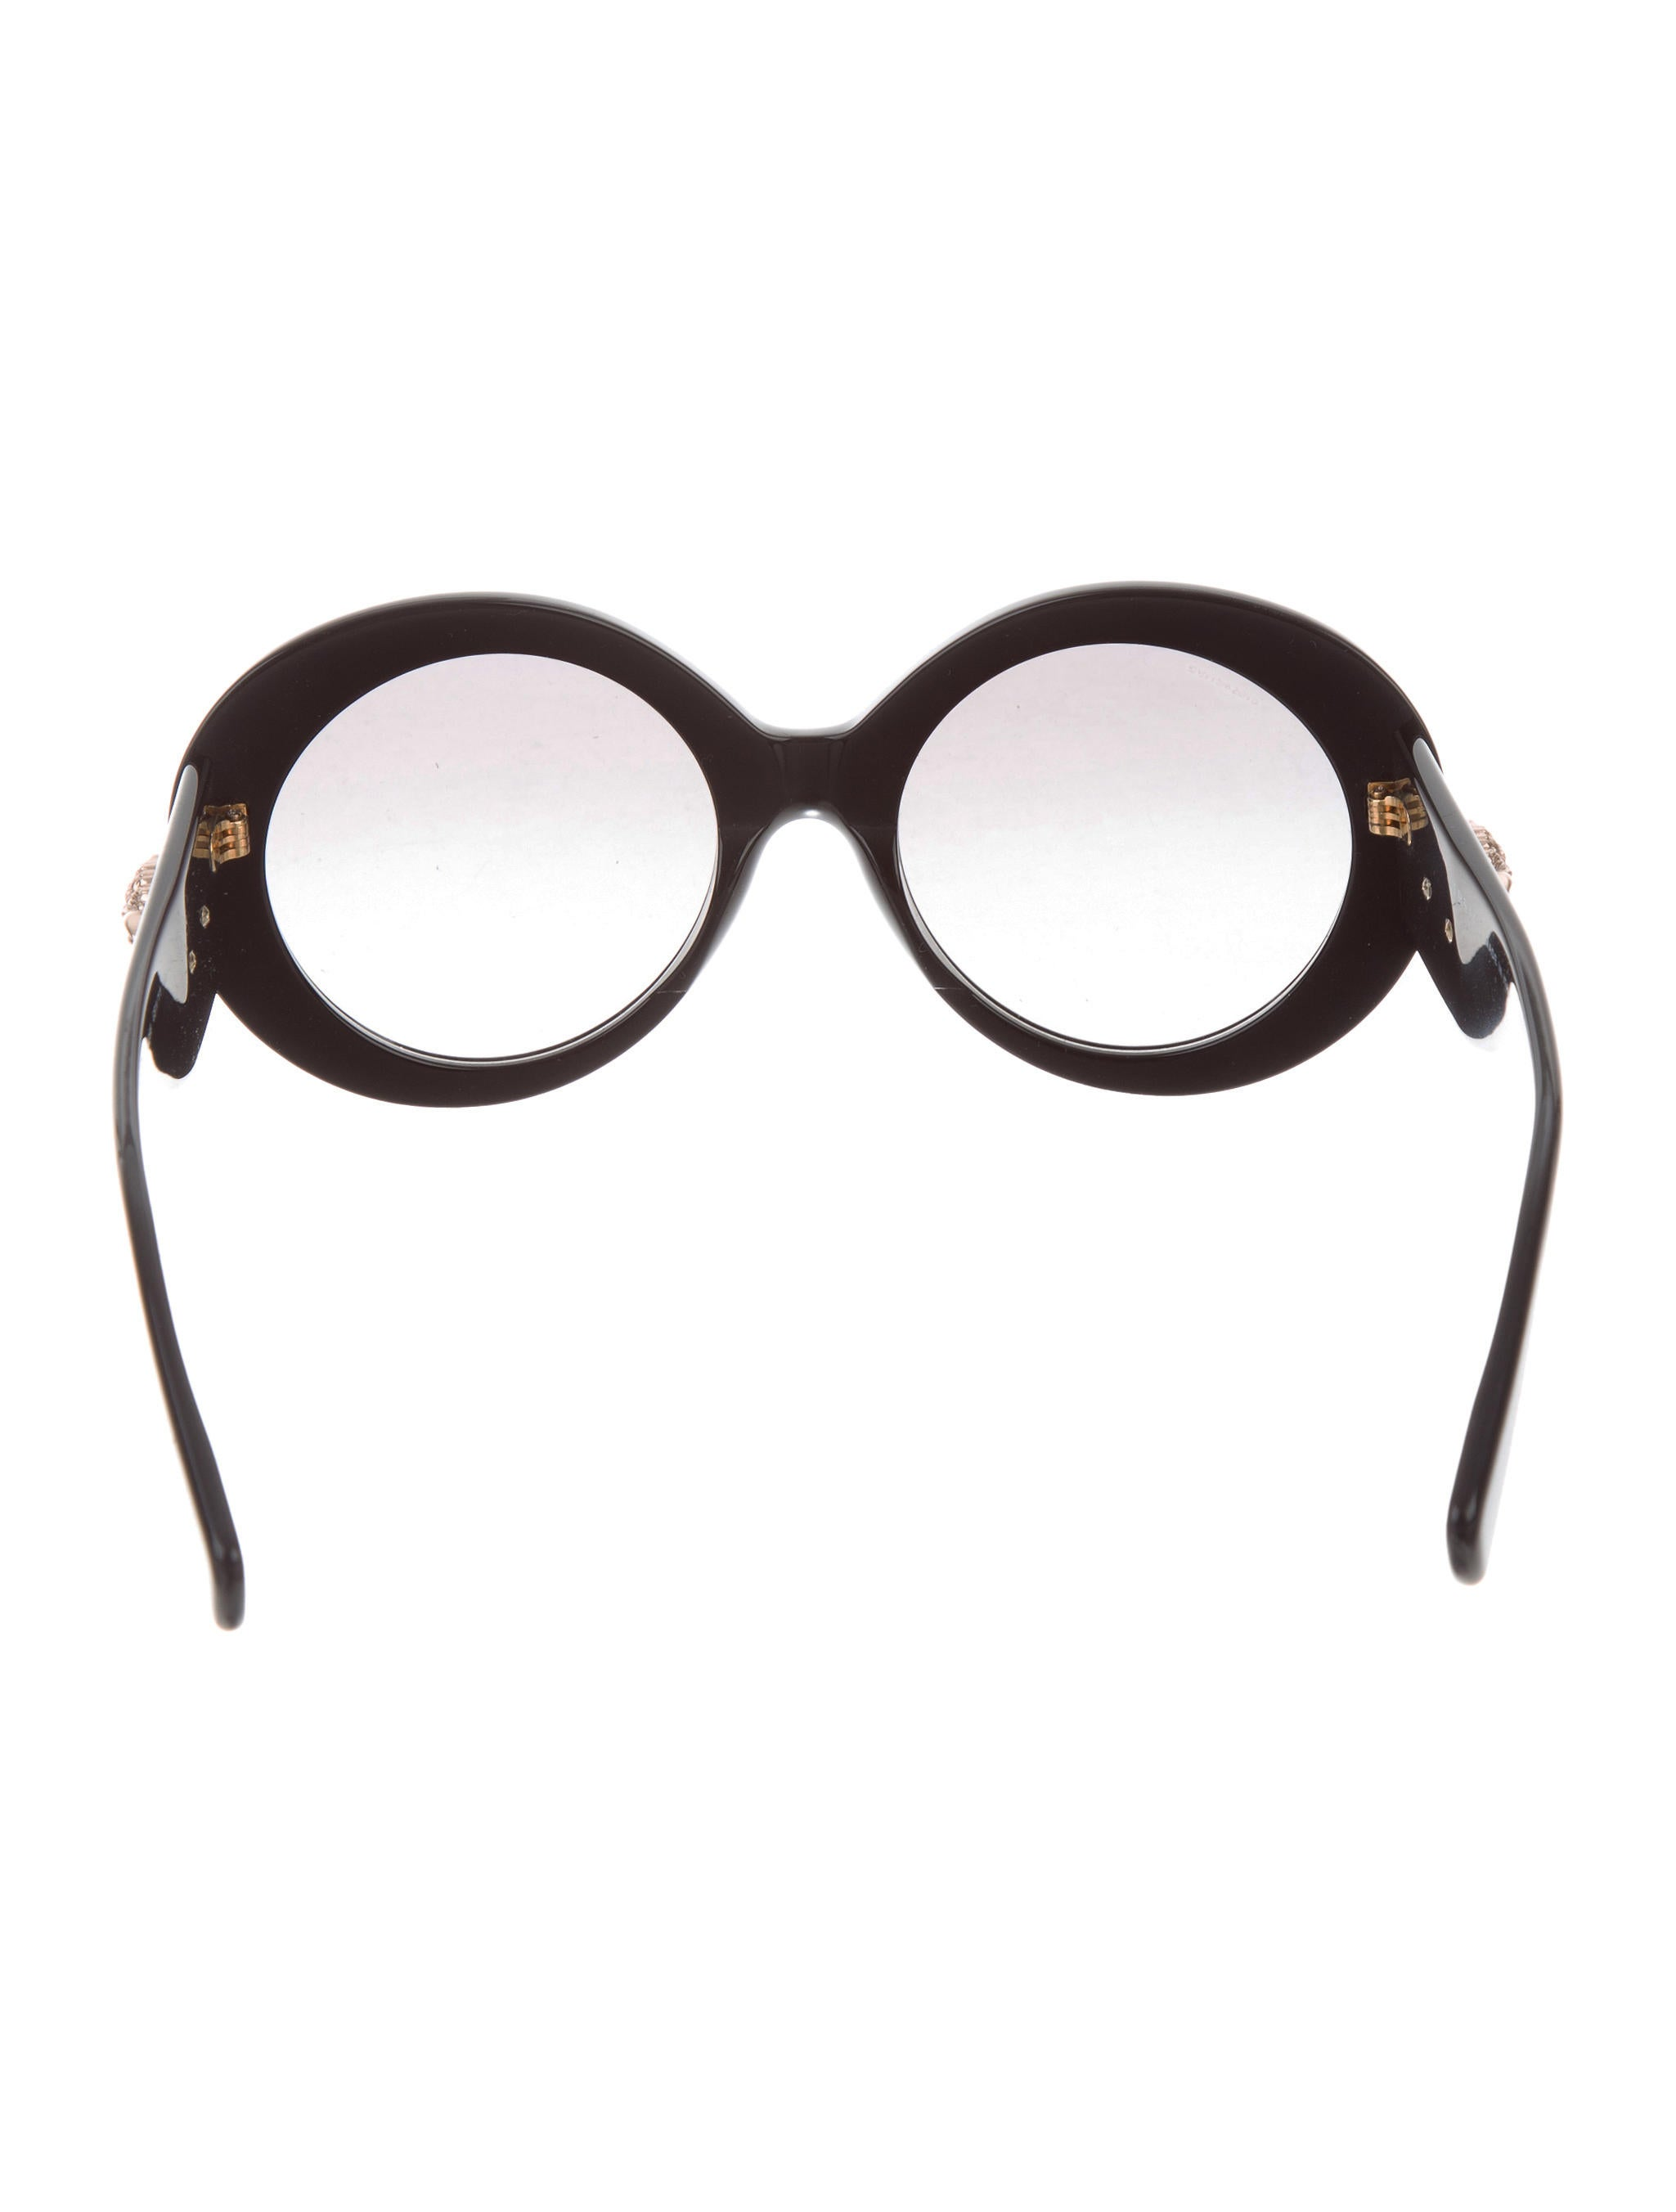 1e7653249439 Versace Black And Gold Rounded Sunglasses - Bitterroot Public Library